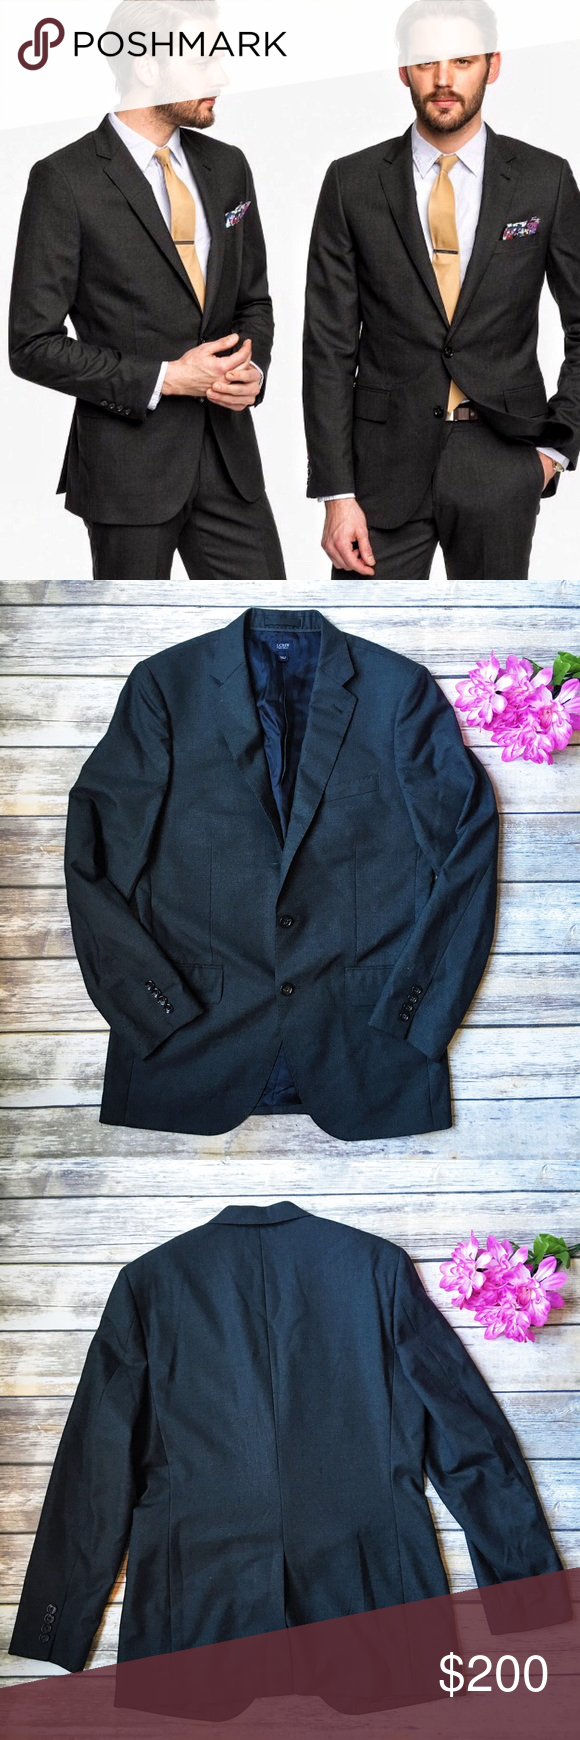 J. Crew Men's NWOT Aldridge Jacket Size 38R 💙 ★ Like new condition. 💕 ★ This incredible men's Italian wool Aldridge jacket from J. Crew is an absolute must have! This jacket is SOLD OUT! In pristine condition, POCKETS STILL SEWN SHUT. Get it now! 😻 ★ Italian Wool. ★ NO TRADES! 🚫 ★ NO MODELING! 🚫 ★ YES REASONABLE OFFERS! ✅ ★ Measurements available by request and as soon as possible! 💁🏼 J. Crew Jackets & Coats